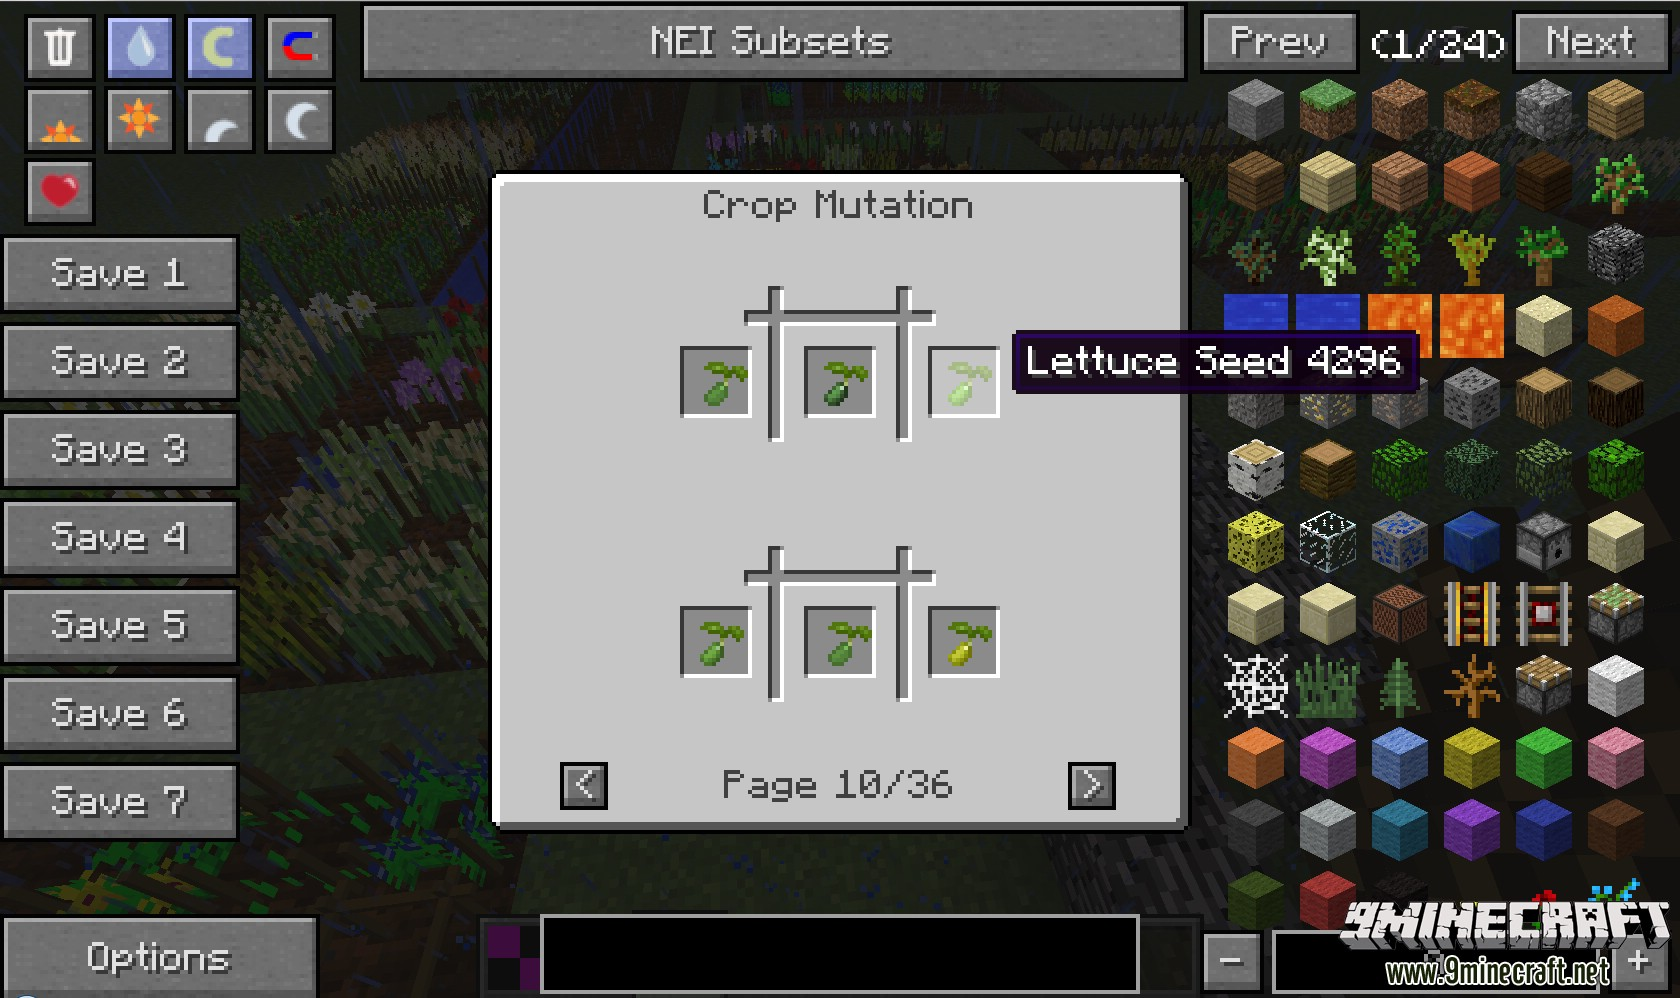 1485208632_770_agricraft-mod-1-10-21-7-10-agriculture-in-minecraft AgriCraft Mod 1.10.2/1.7.10 (Agriculture in Minecraft)